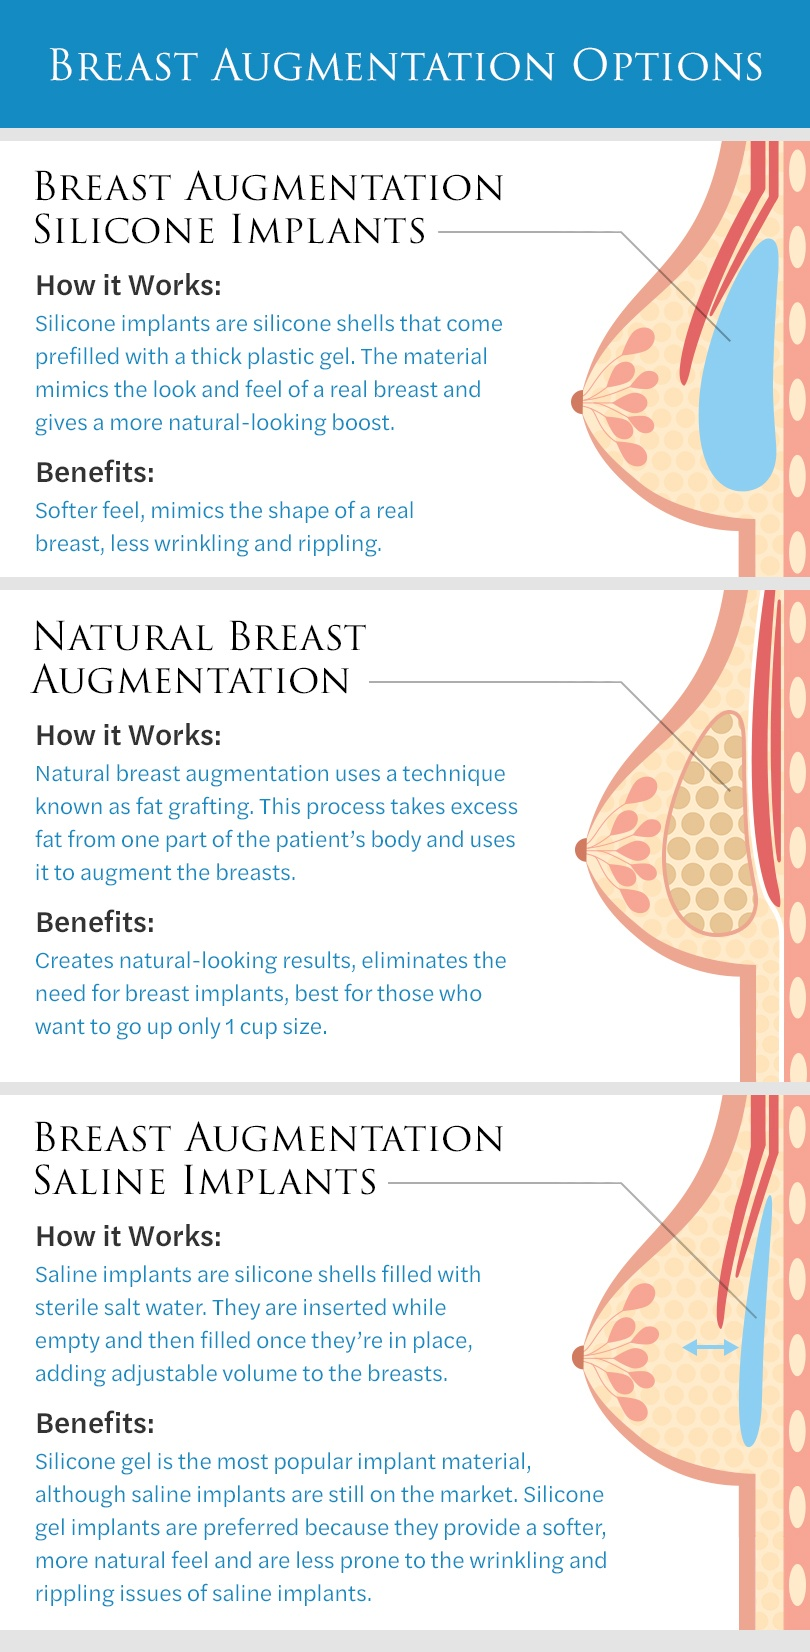 Infographic of breast augmentation options including: Breast Augmentation with Silicone Implants; Natural Breast Augmentation; Breast Augmentation with saline implants.